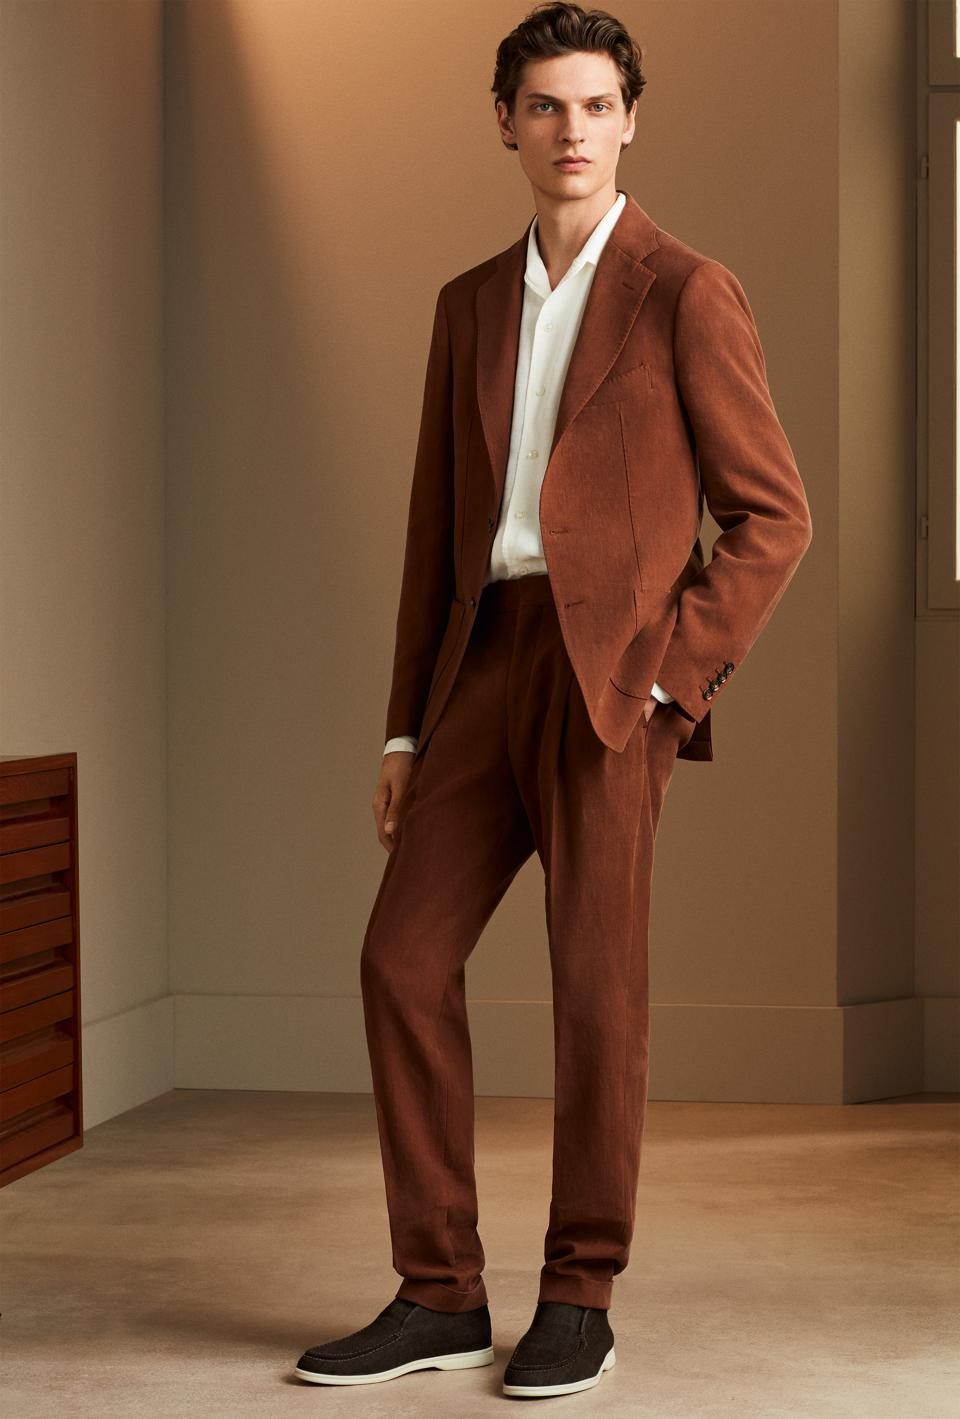 The Effortless Summer Linen Suit: Madrid Jacket and Two Pieces Trouser